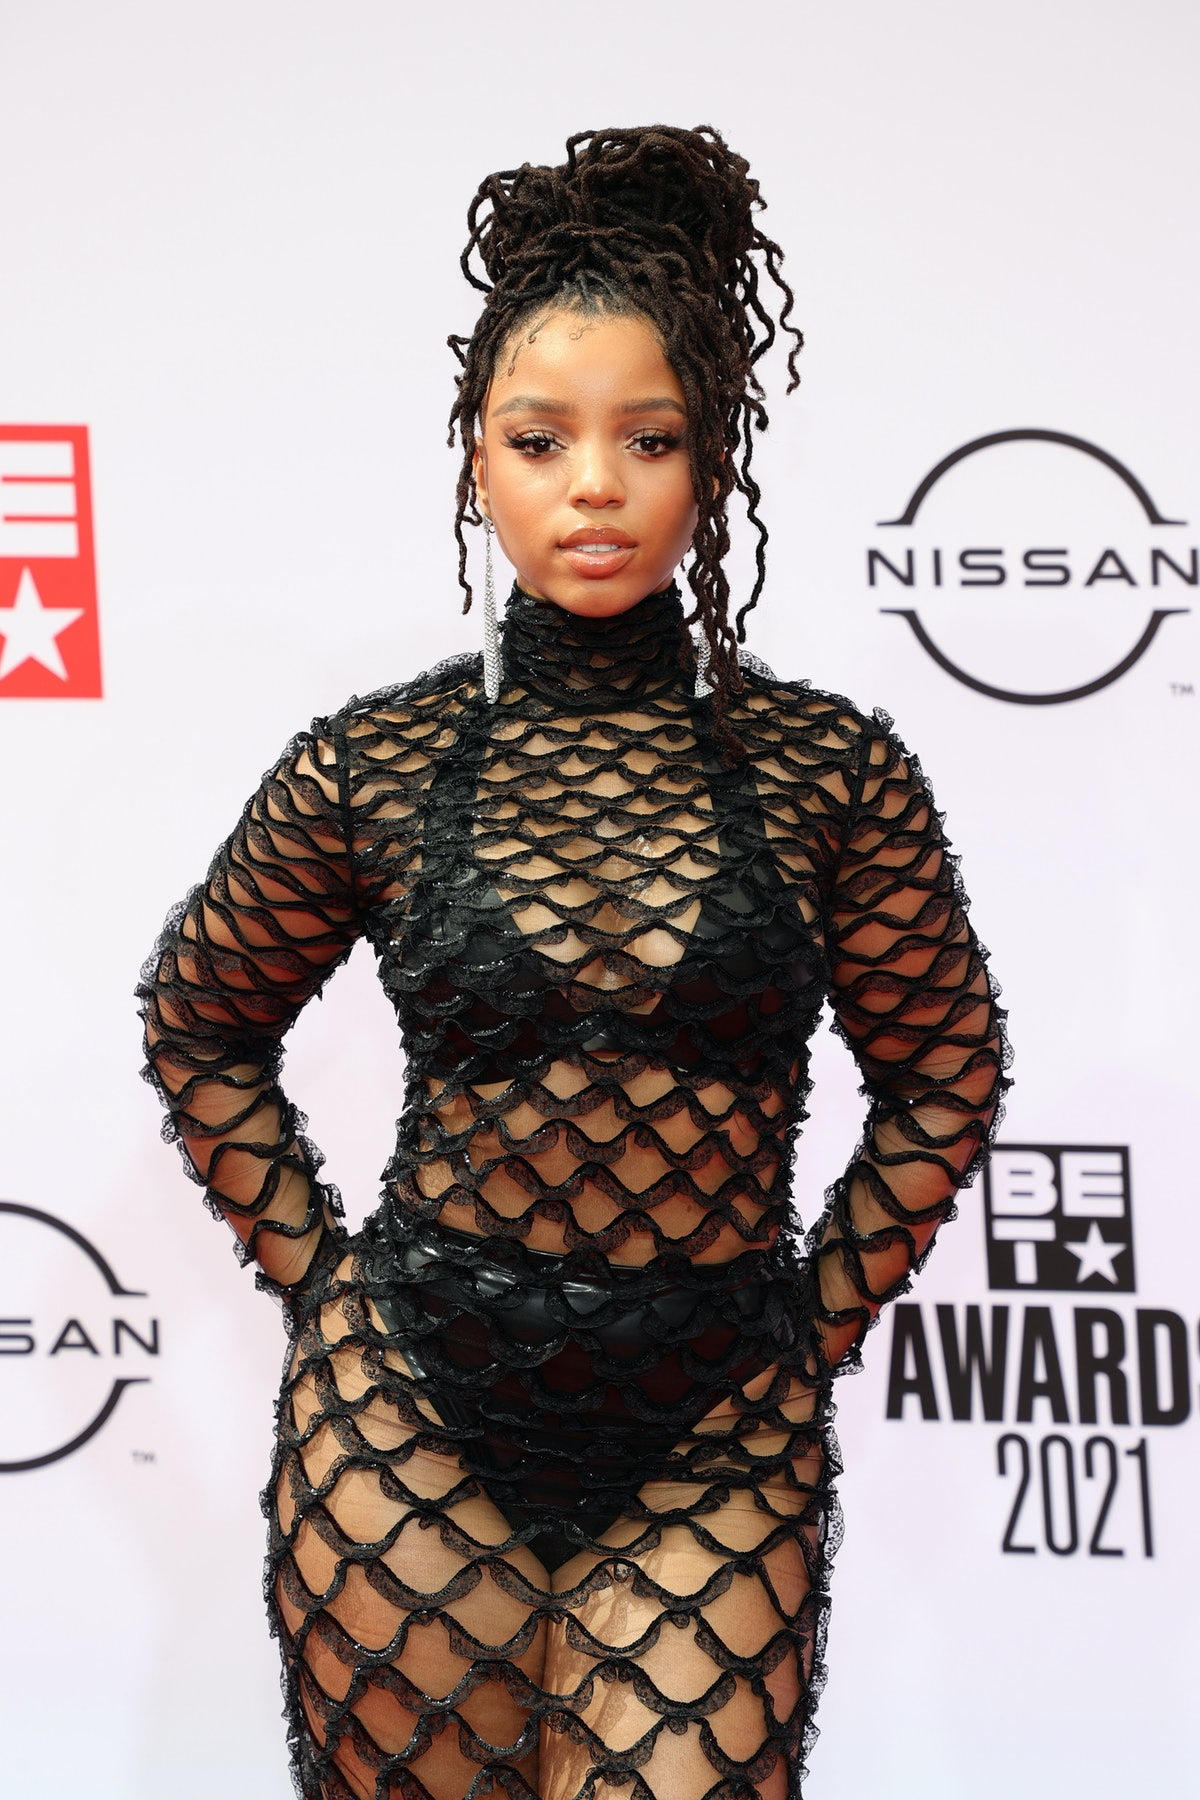 LOS ANGELES, CALIFORNIA - JUNE 27: Chloe Bailey attends the BET Awards 2021 at Microsoft Theater on ...